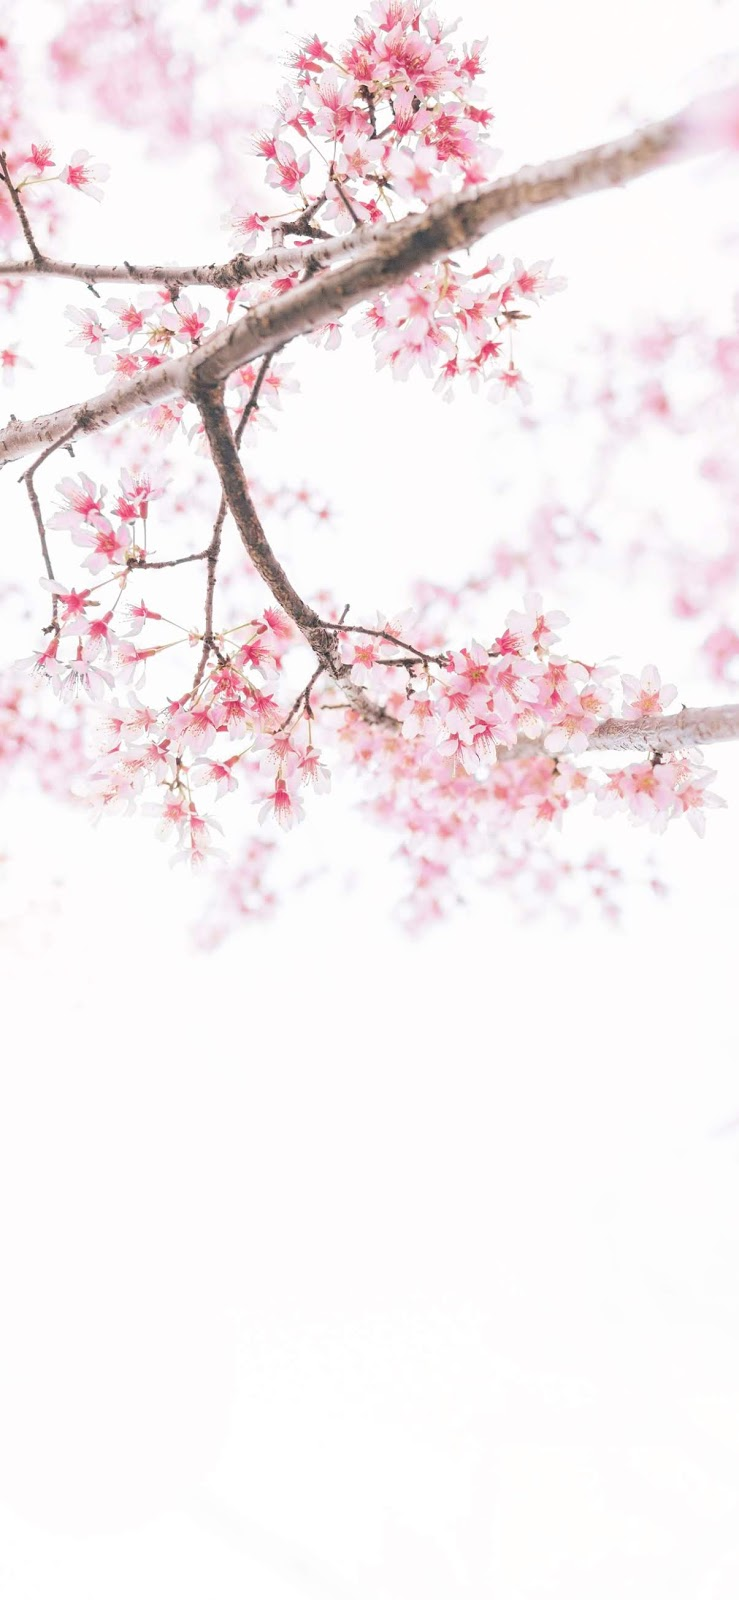 cherry blossom wallpaper iphone xs max